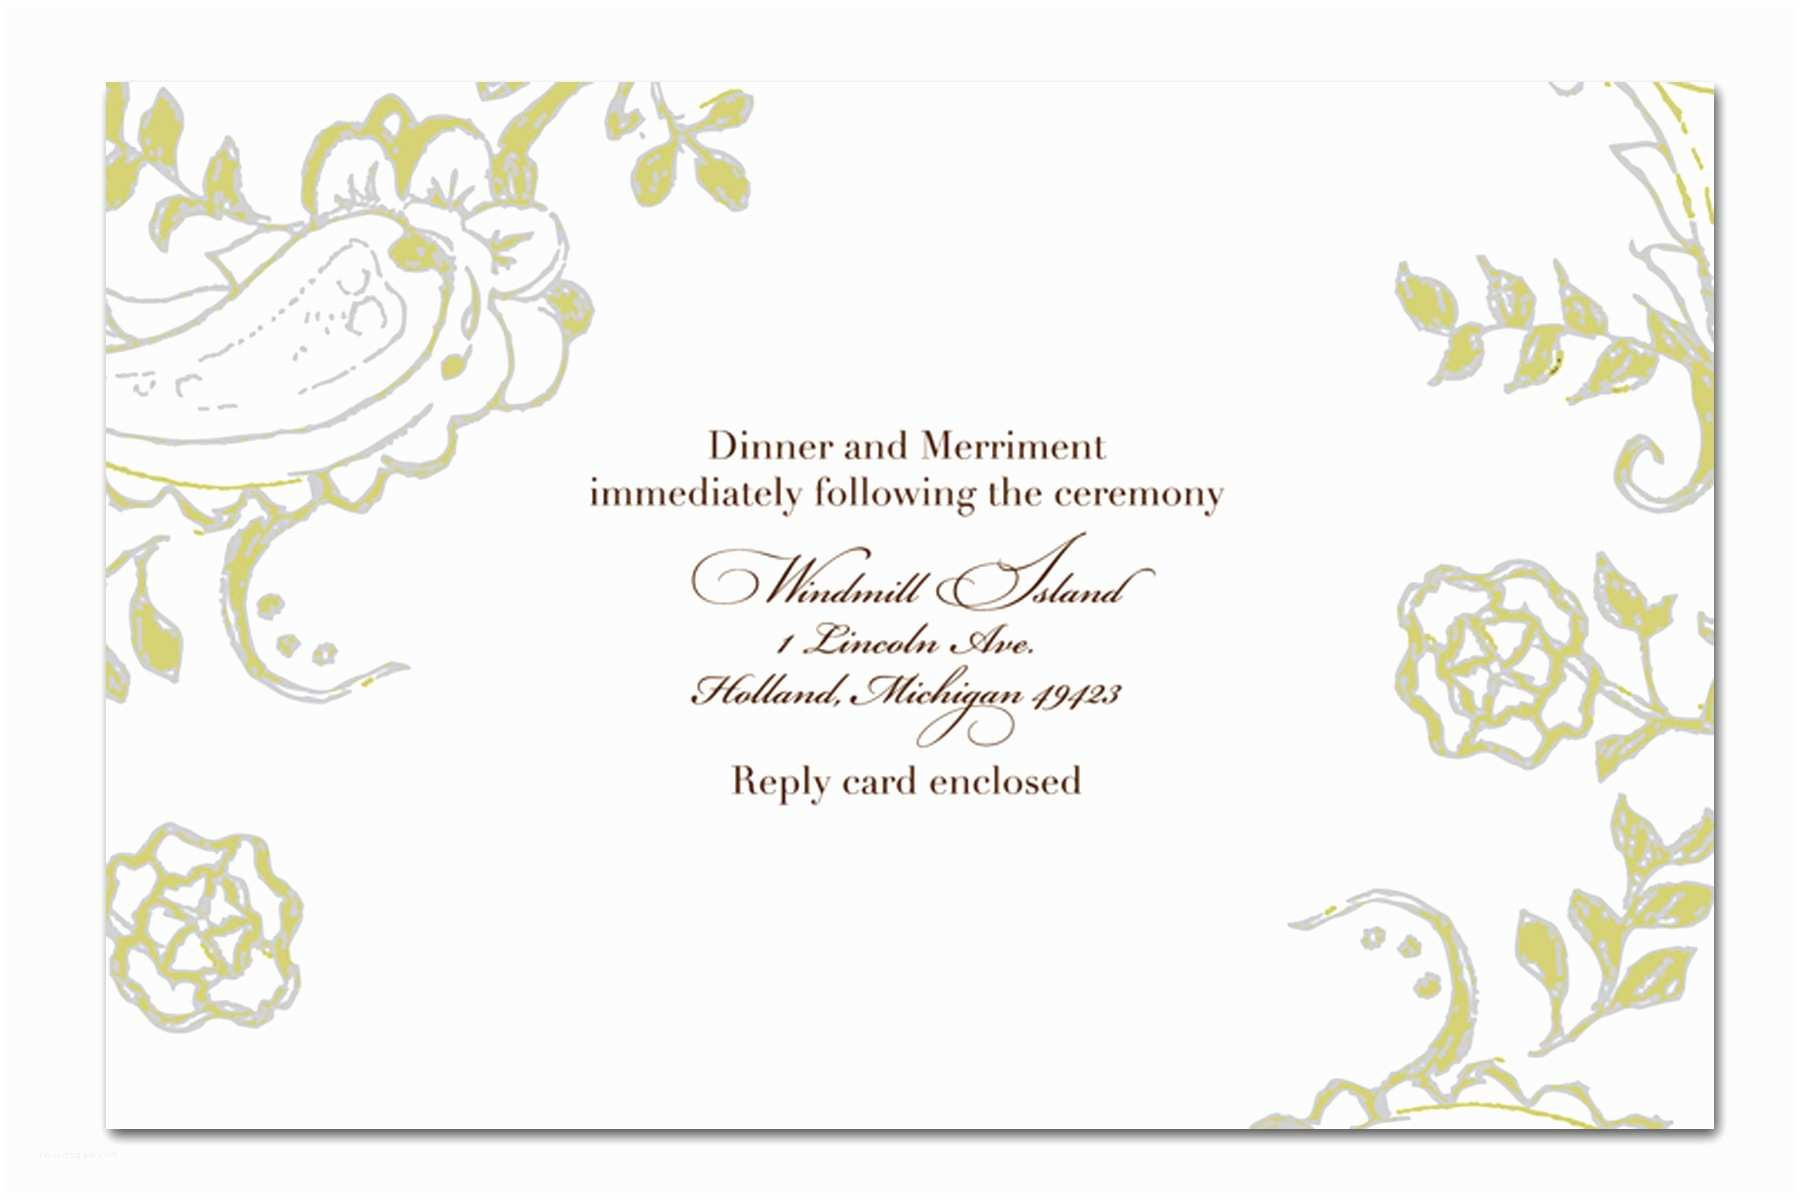 Editable Wedding Invitation Templates Free Download Collection Of Thousands Of Invitation Templates From All